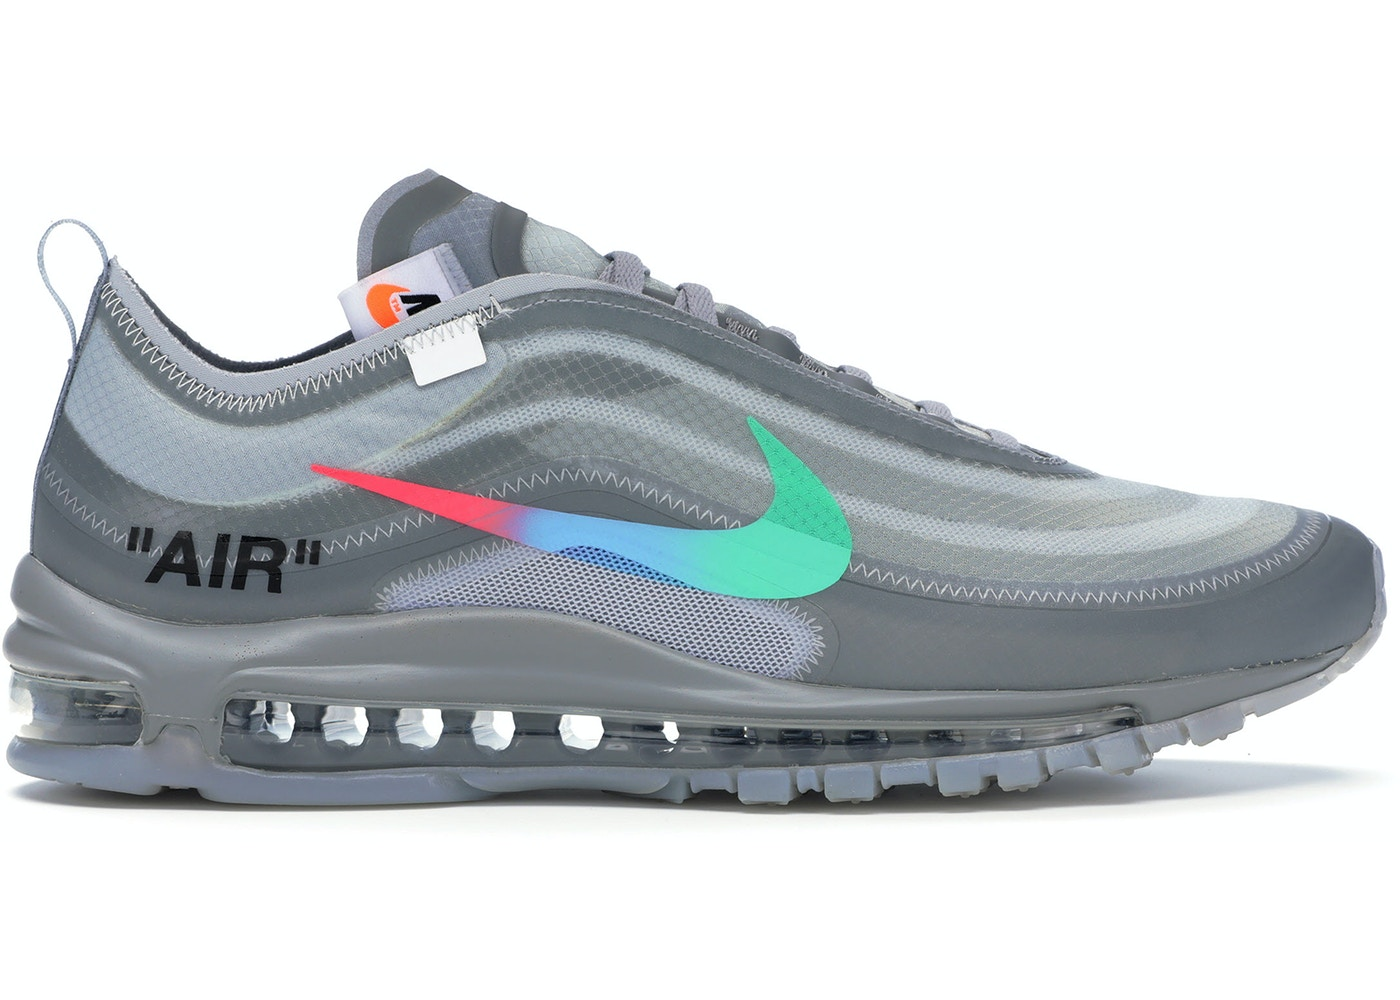 Conception innovante 09bd5 d8f36 Air Max 97 Off-White Menta